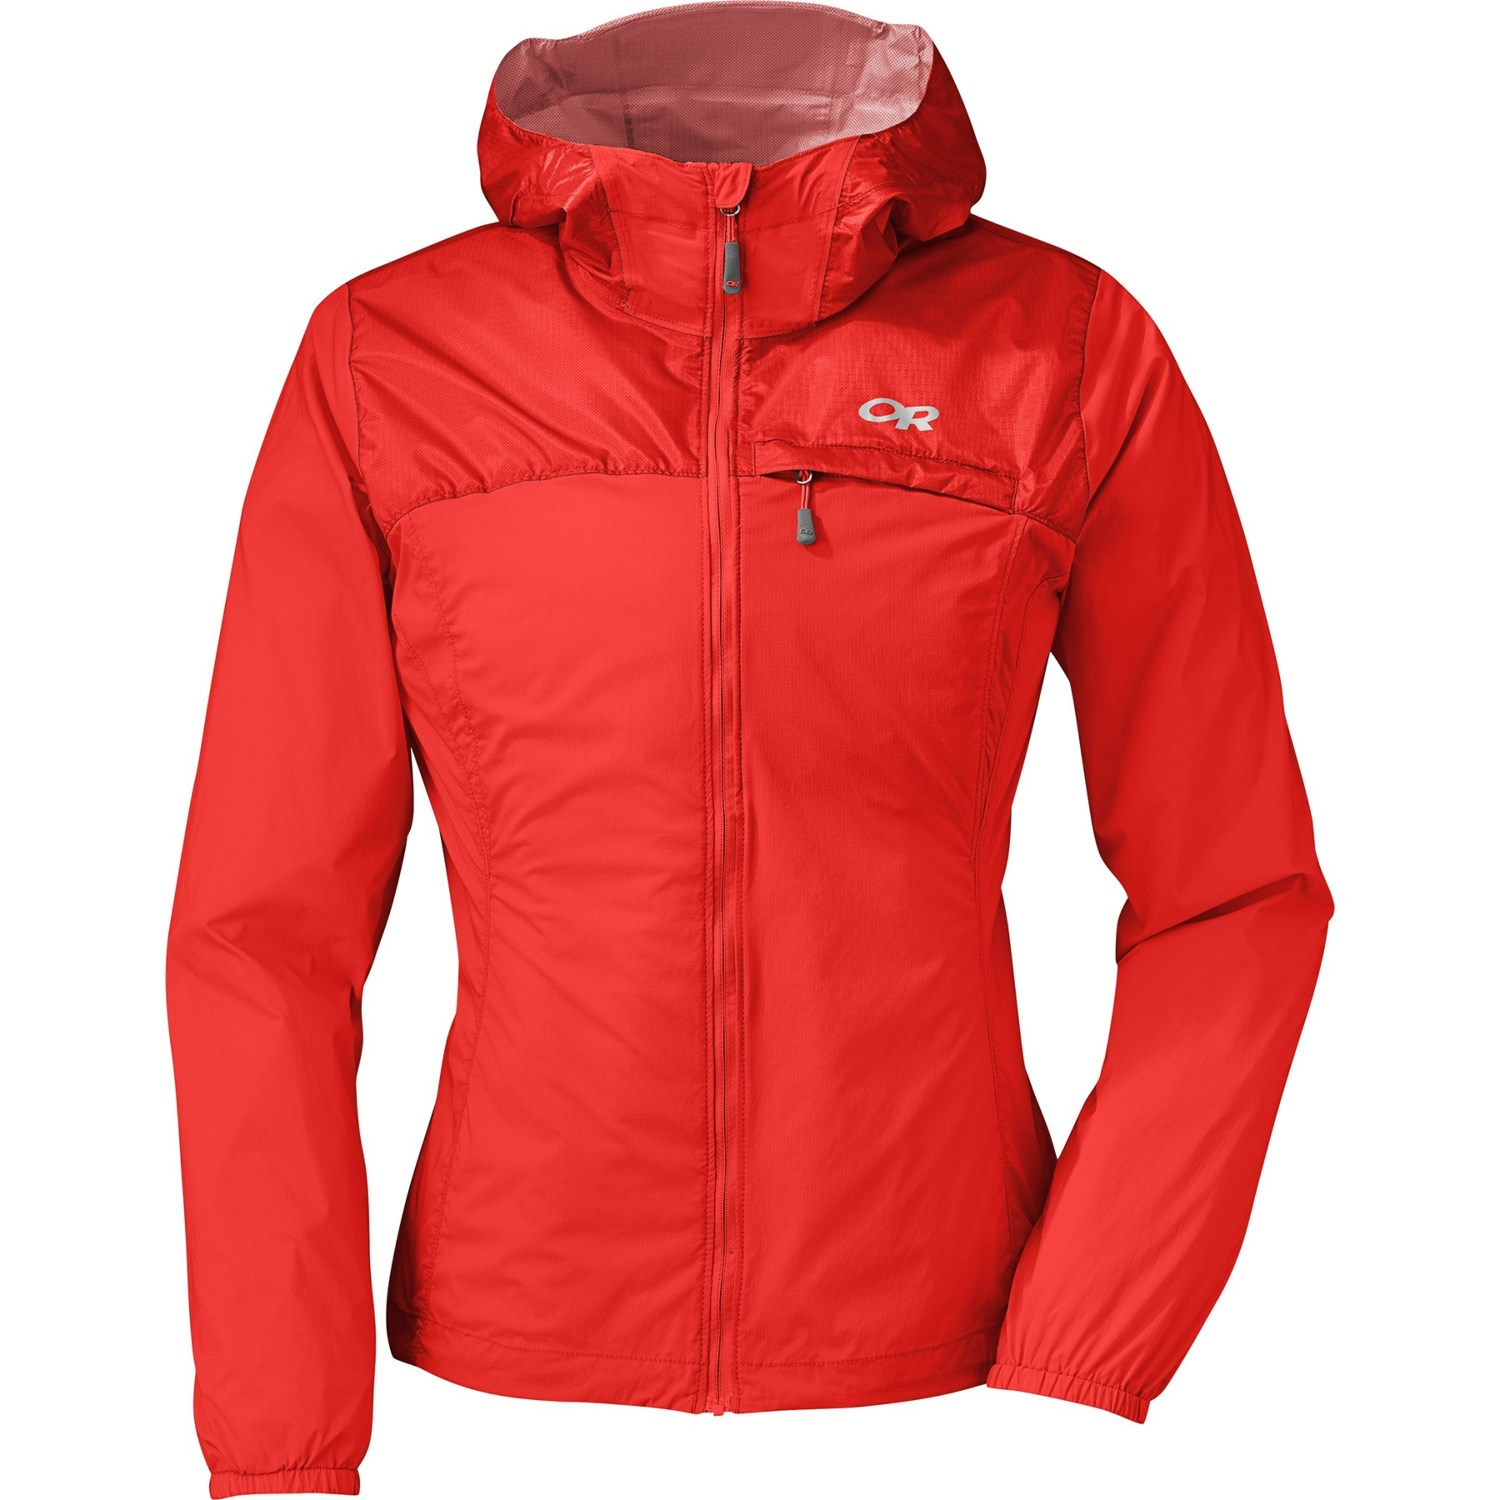 Outdoor Research Helium Hybrid Jacket For Women 9727t